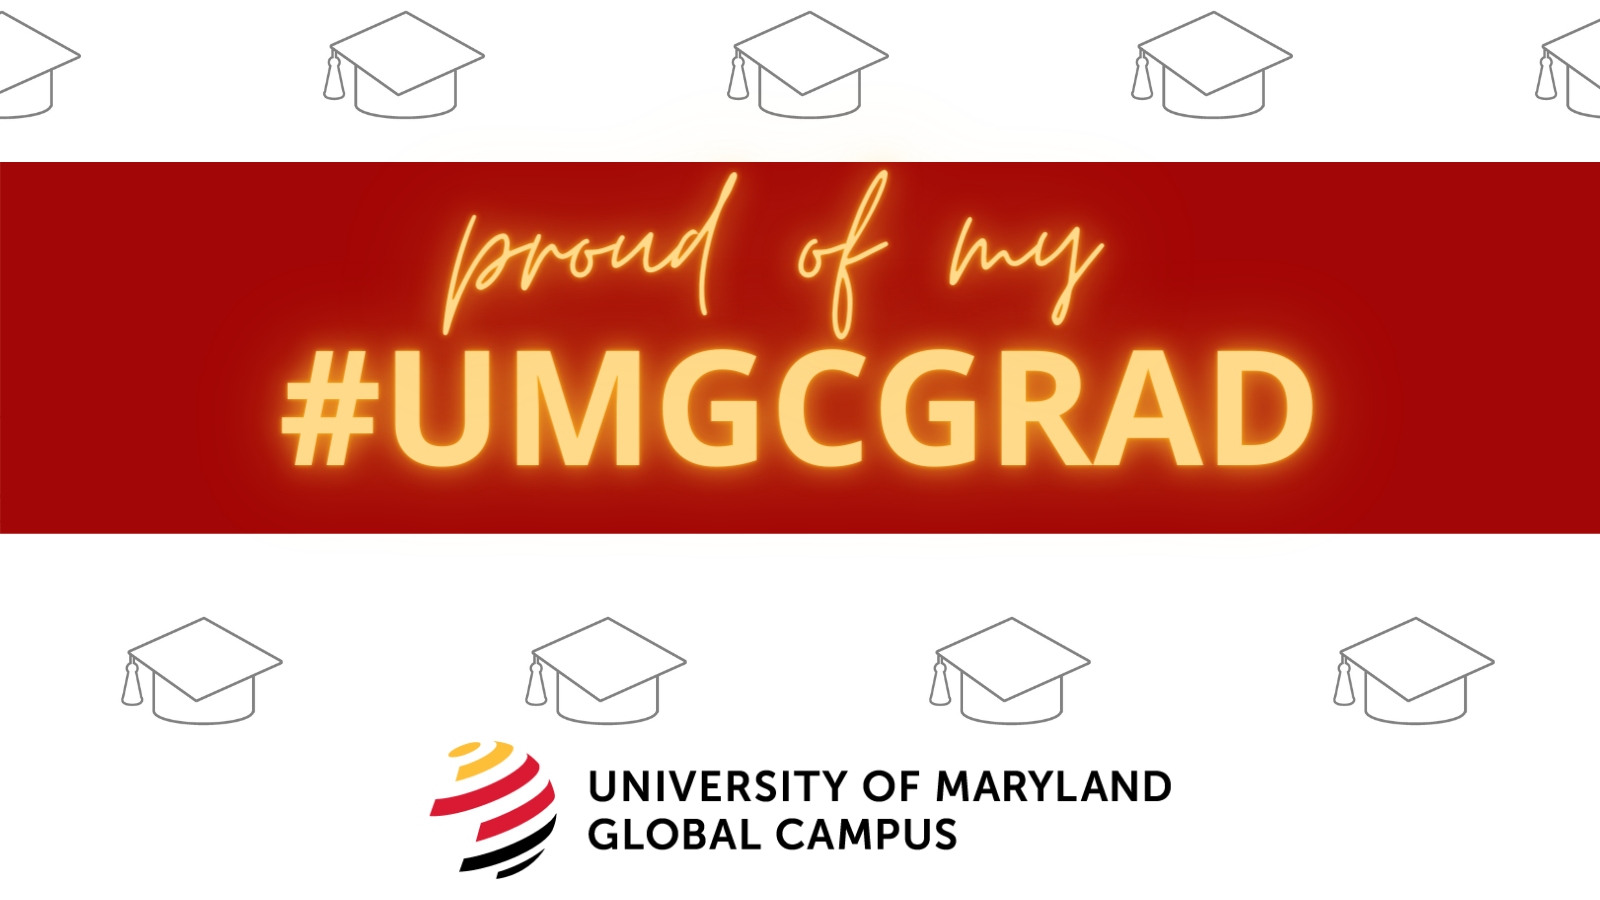 Proud of my #UMGCGRAD: Social media toolkit image 1 for Twitter feed posts